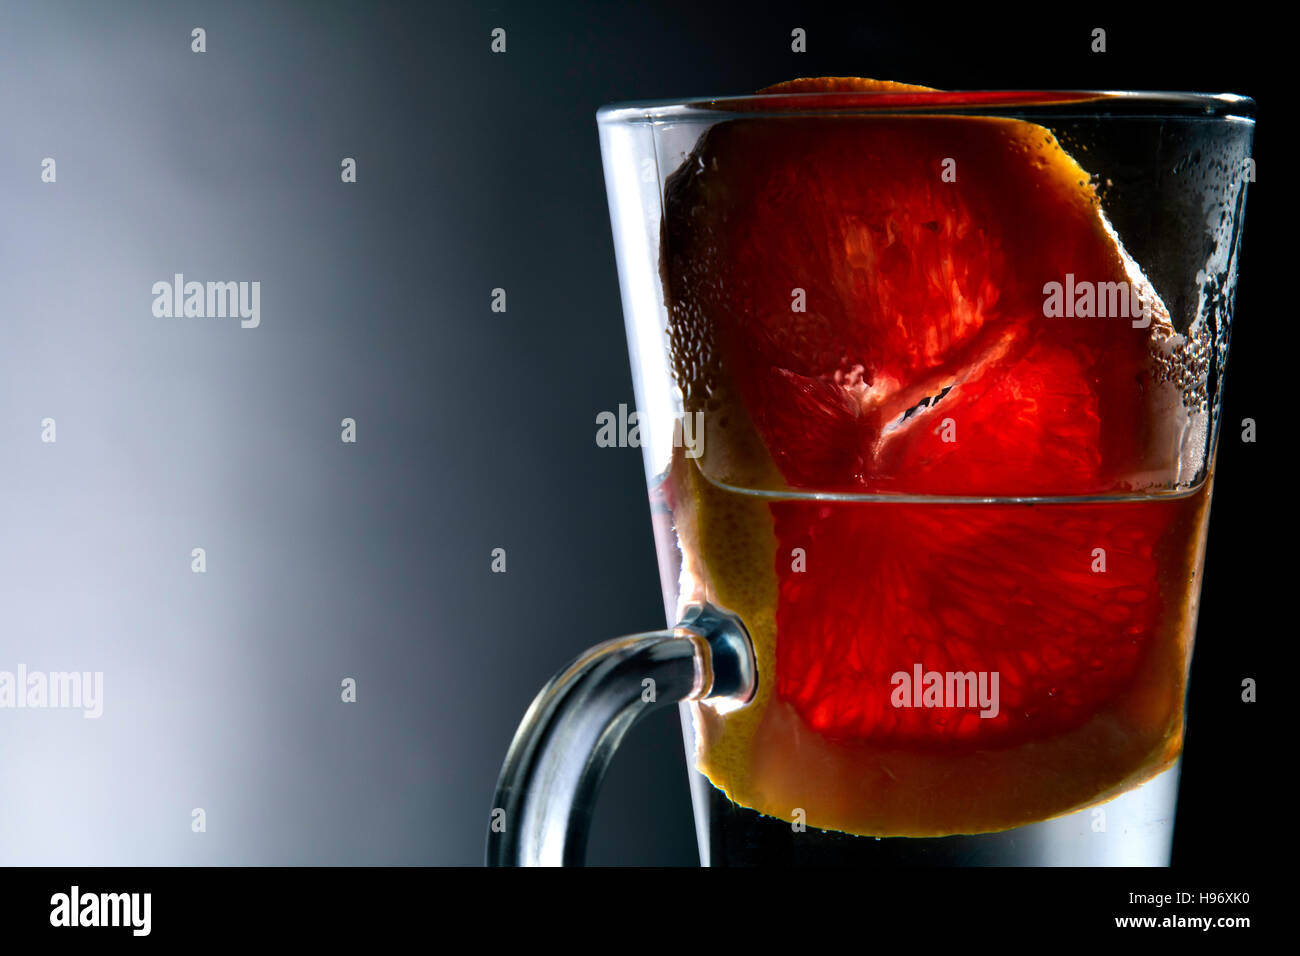 Abstract Still Life Of Thirst Quenching And Enticing Grape Fruit In Glass - Stock Image